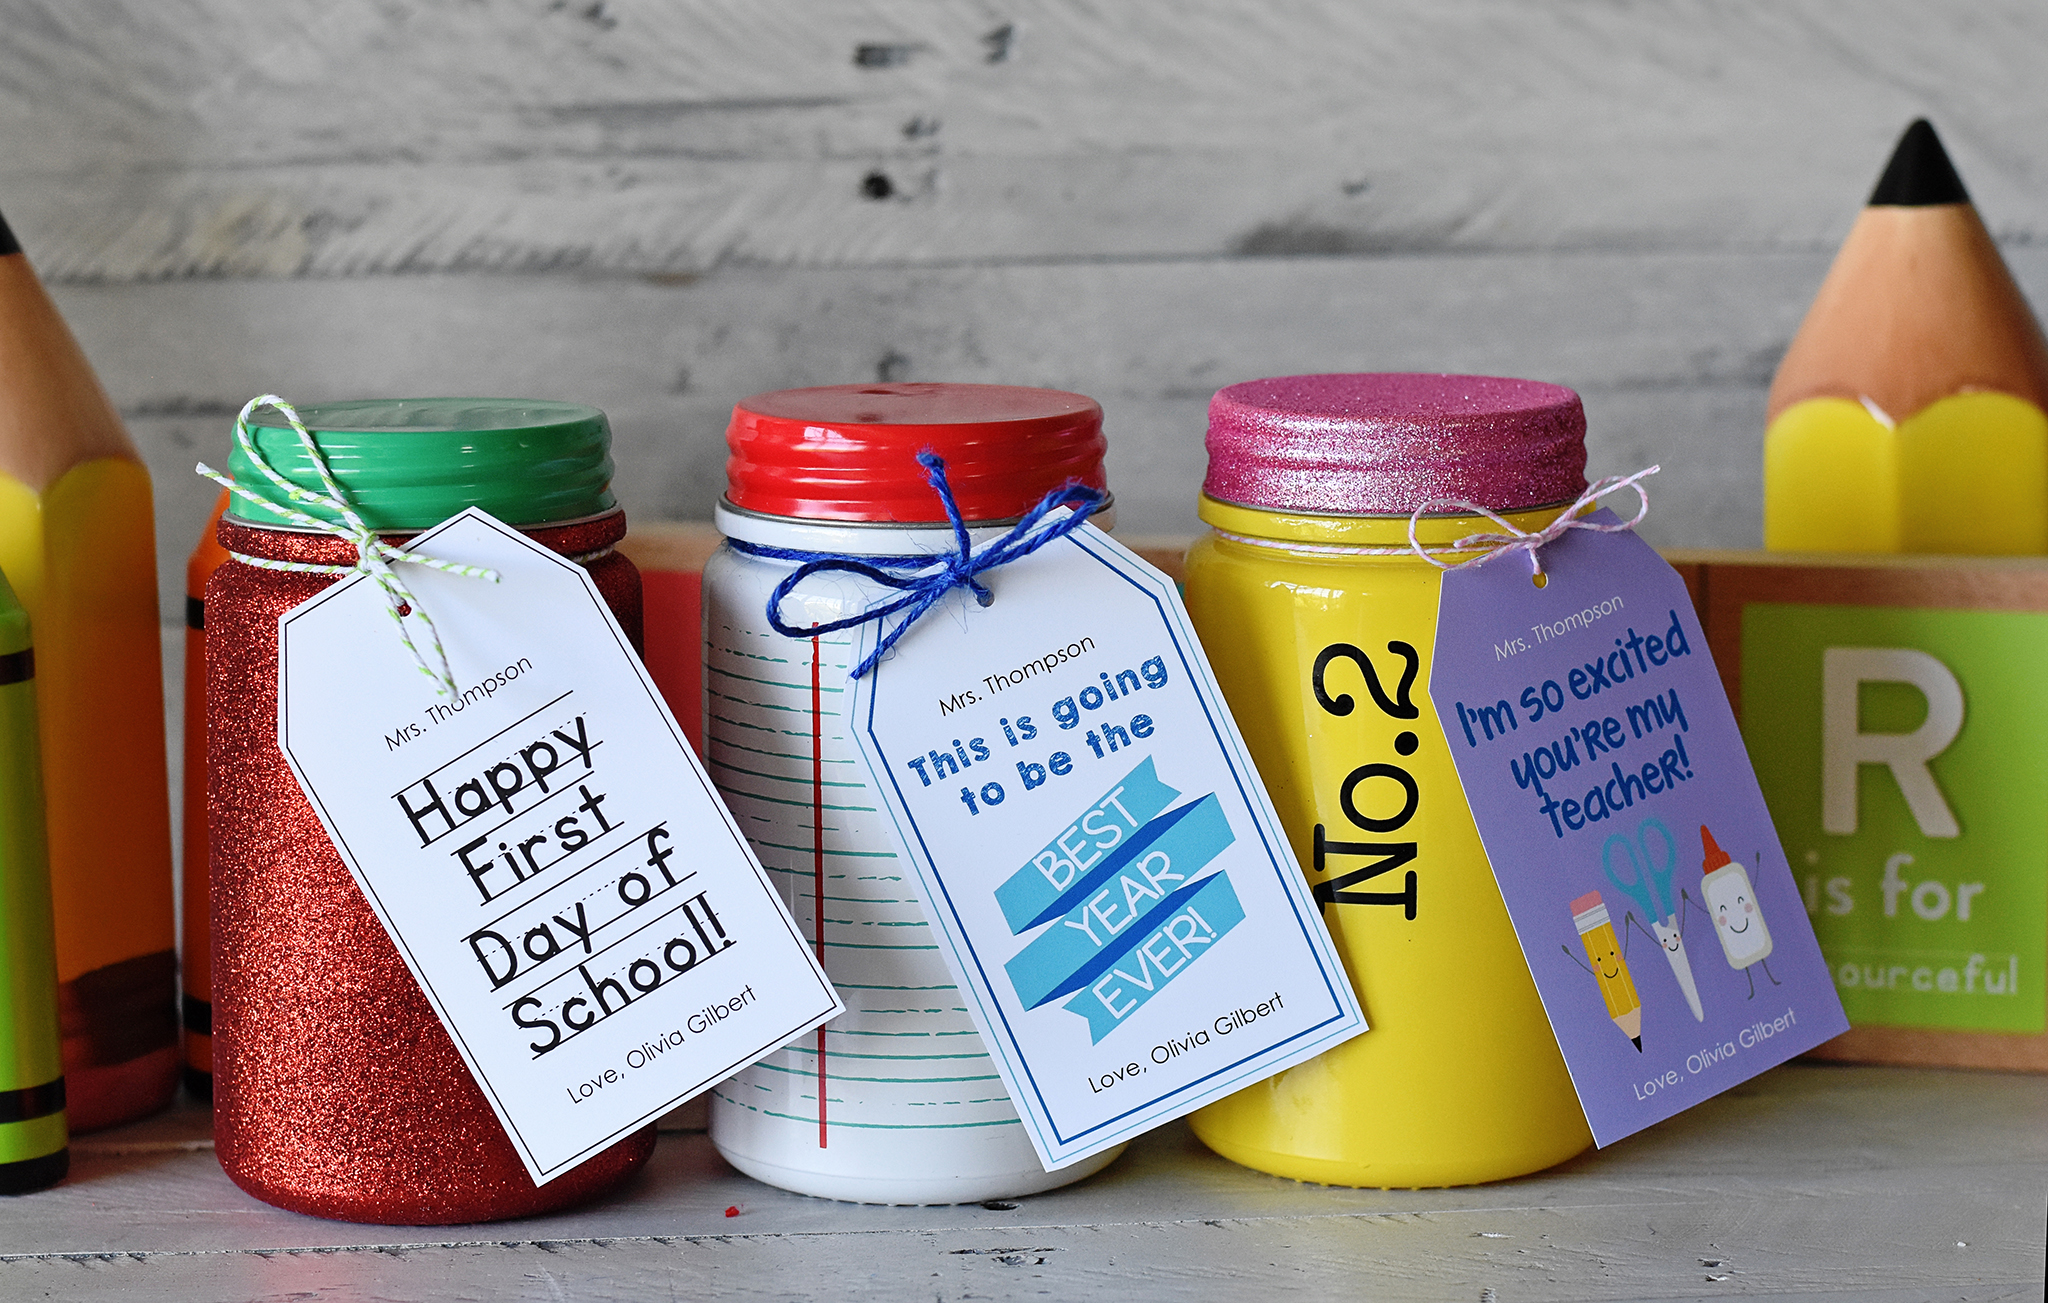 Happy First Day of School Gift Ideas!